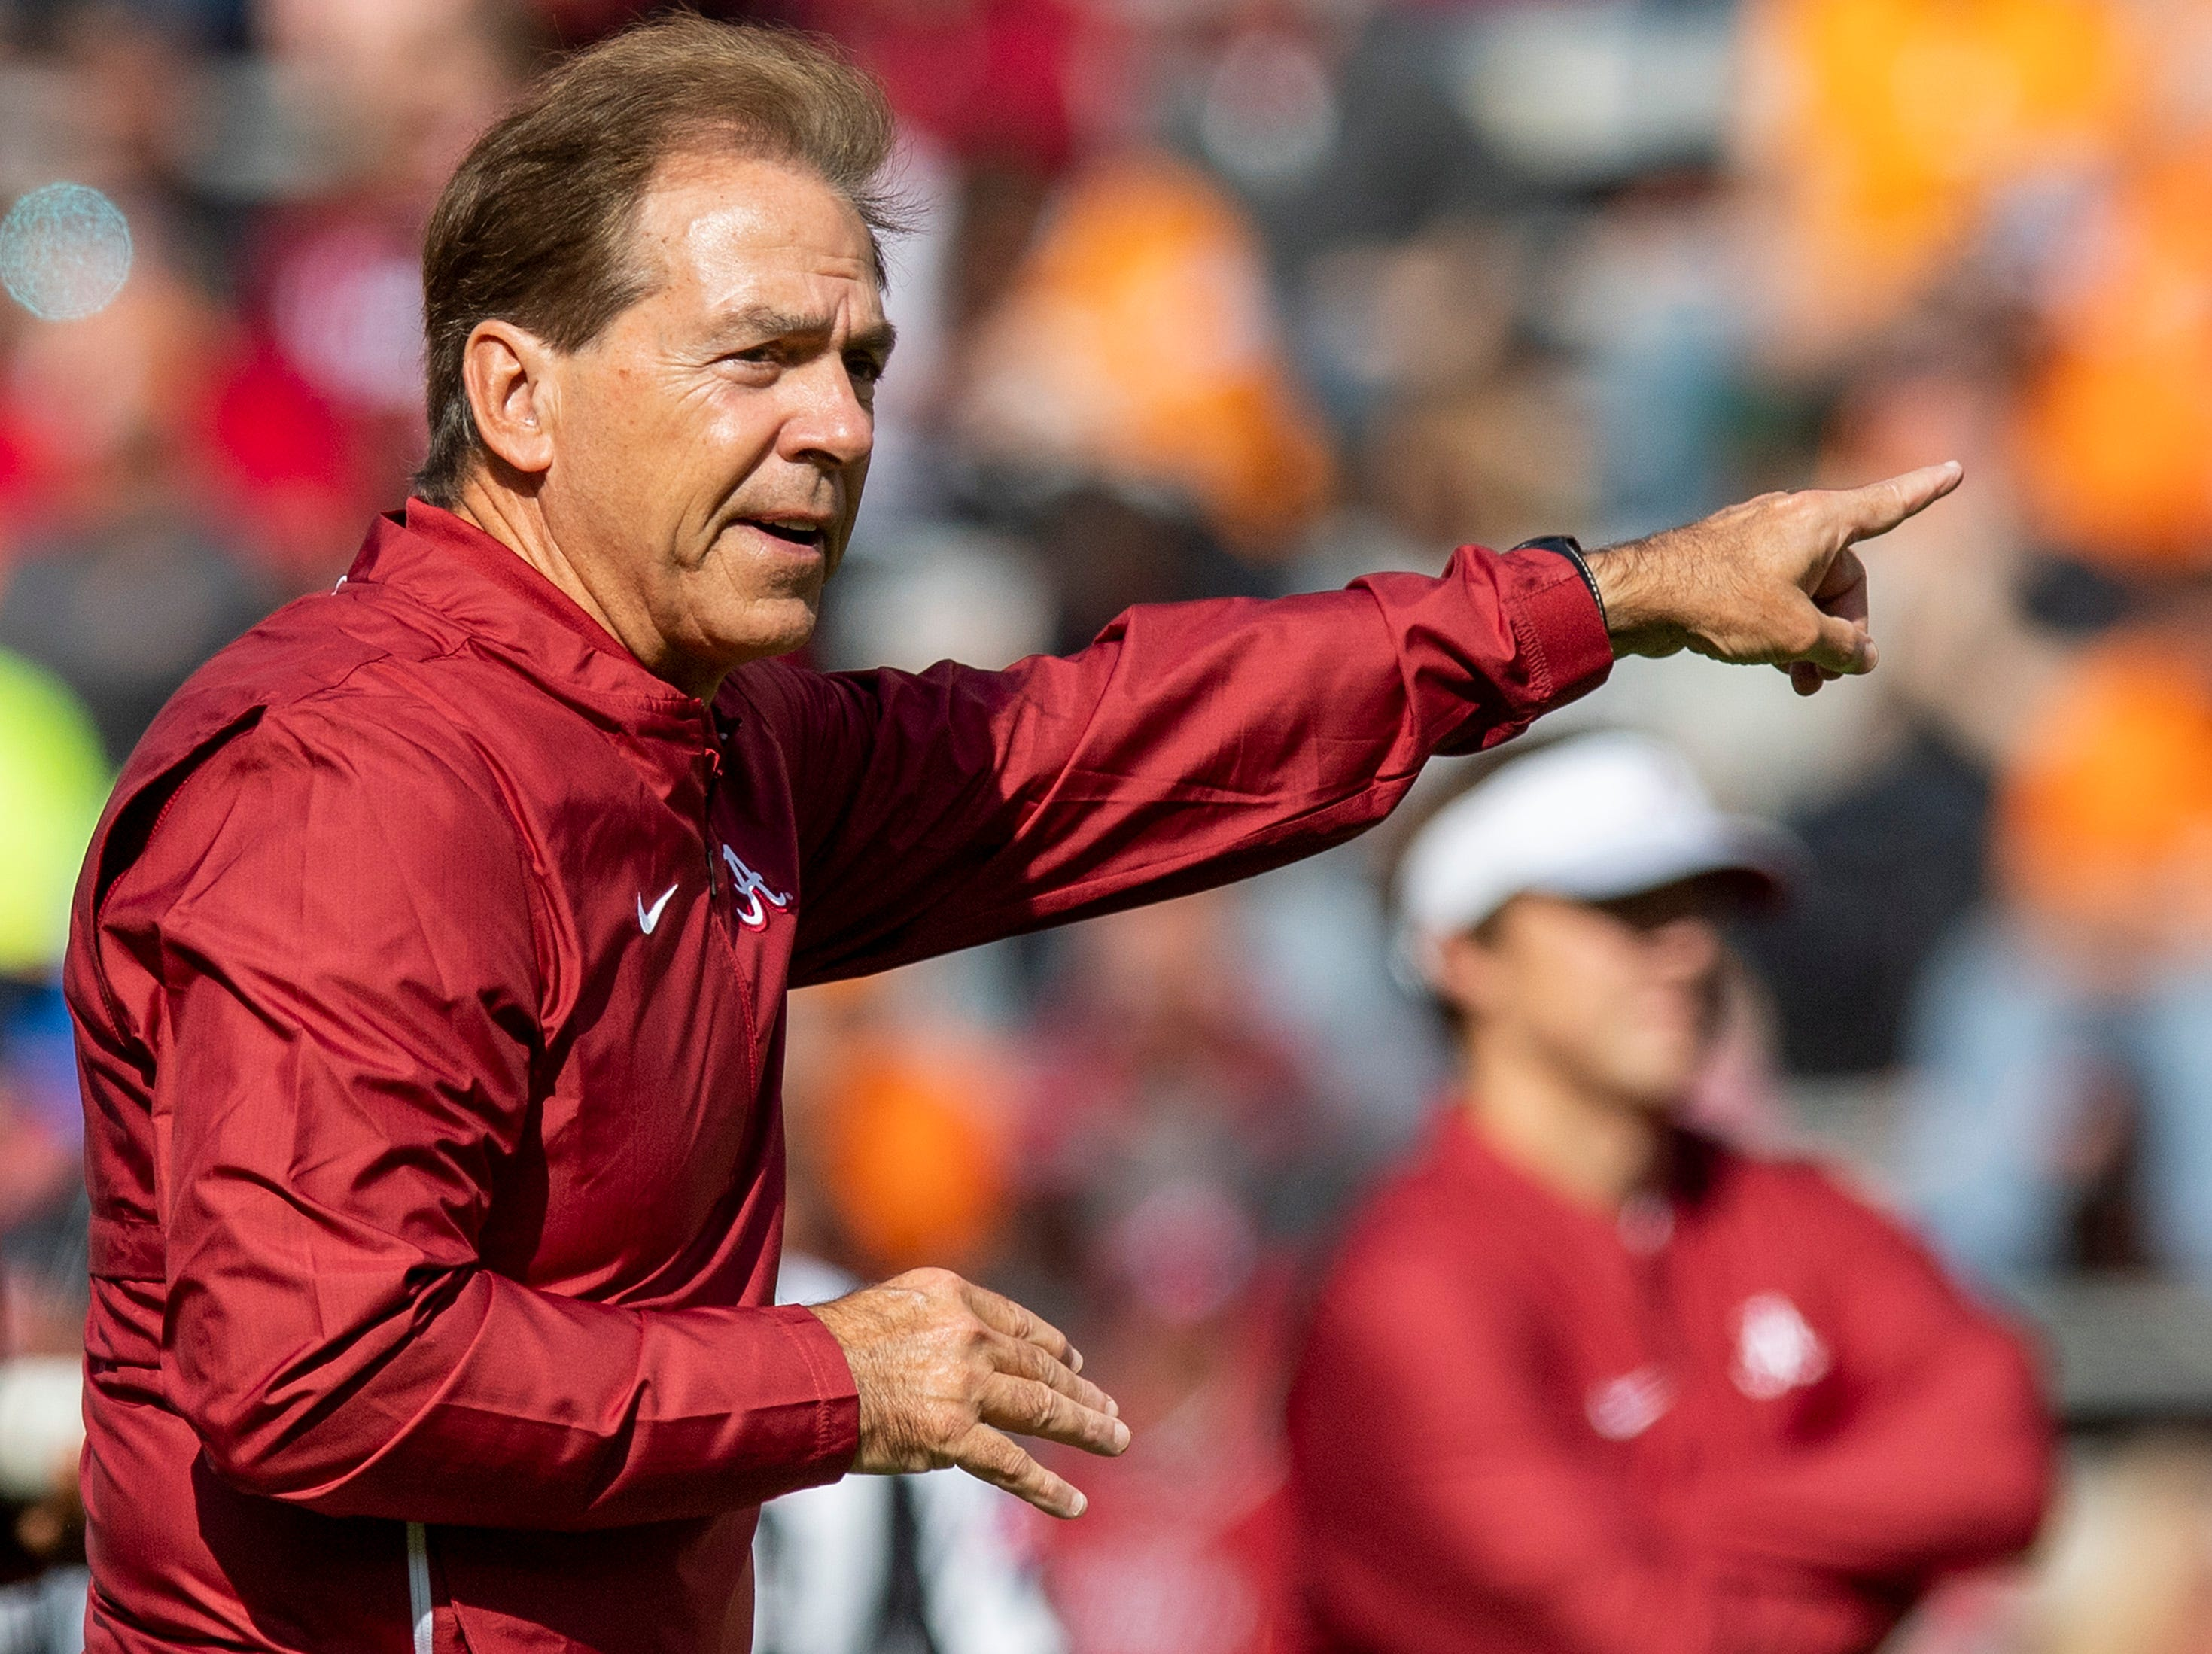 Alabama head coach Nick Saban before the Alabama vs. Tennessee game at Neyland Stadium in Knoxville, Tn., on Saturday October 20, 2018.